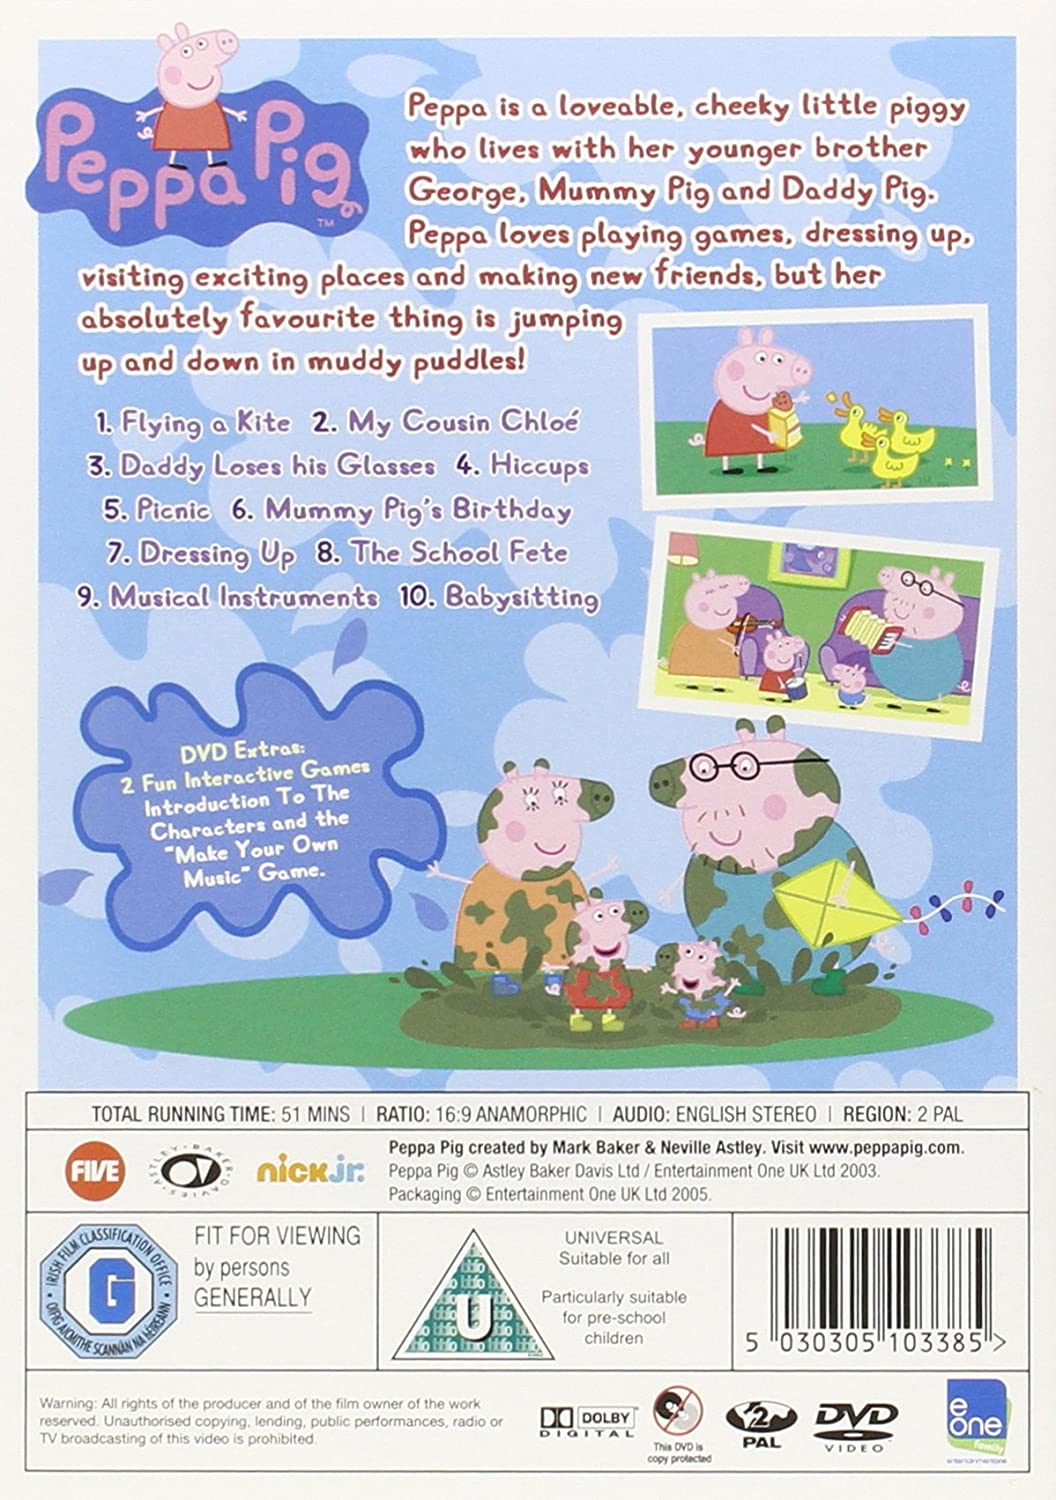 Pe peppa pig online coloring pages - Peppa Pig Flying A Kite And Other Stories Volume 2 Dvd Amazon Co Uk Peppa Pig Lily Snowden Fine Voice Morwenna Banks Voice Richard Ridings